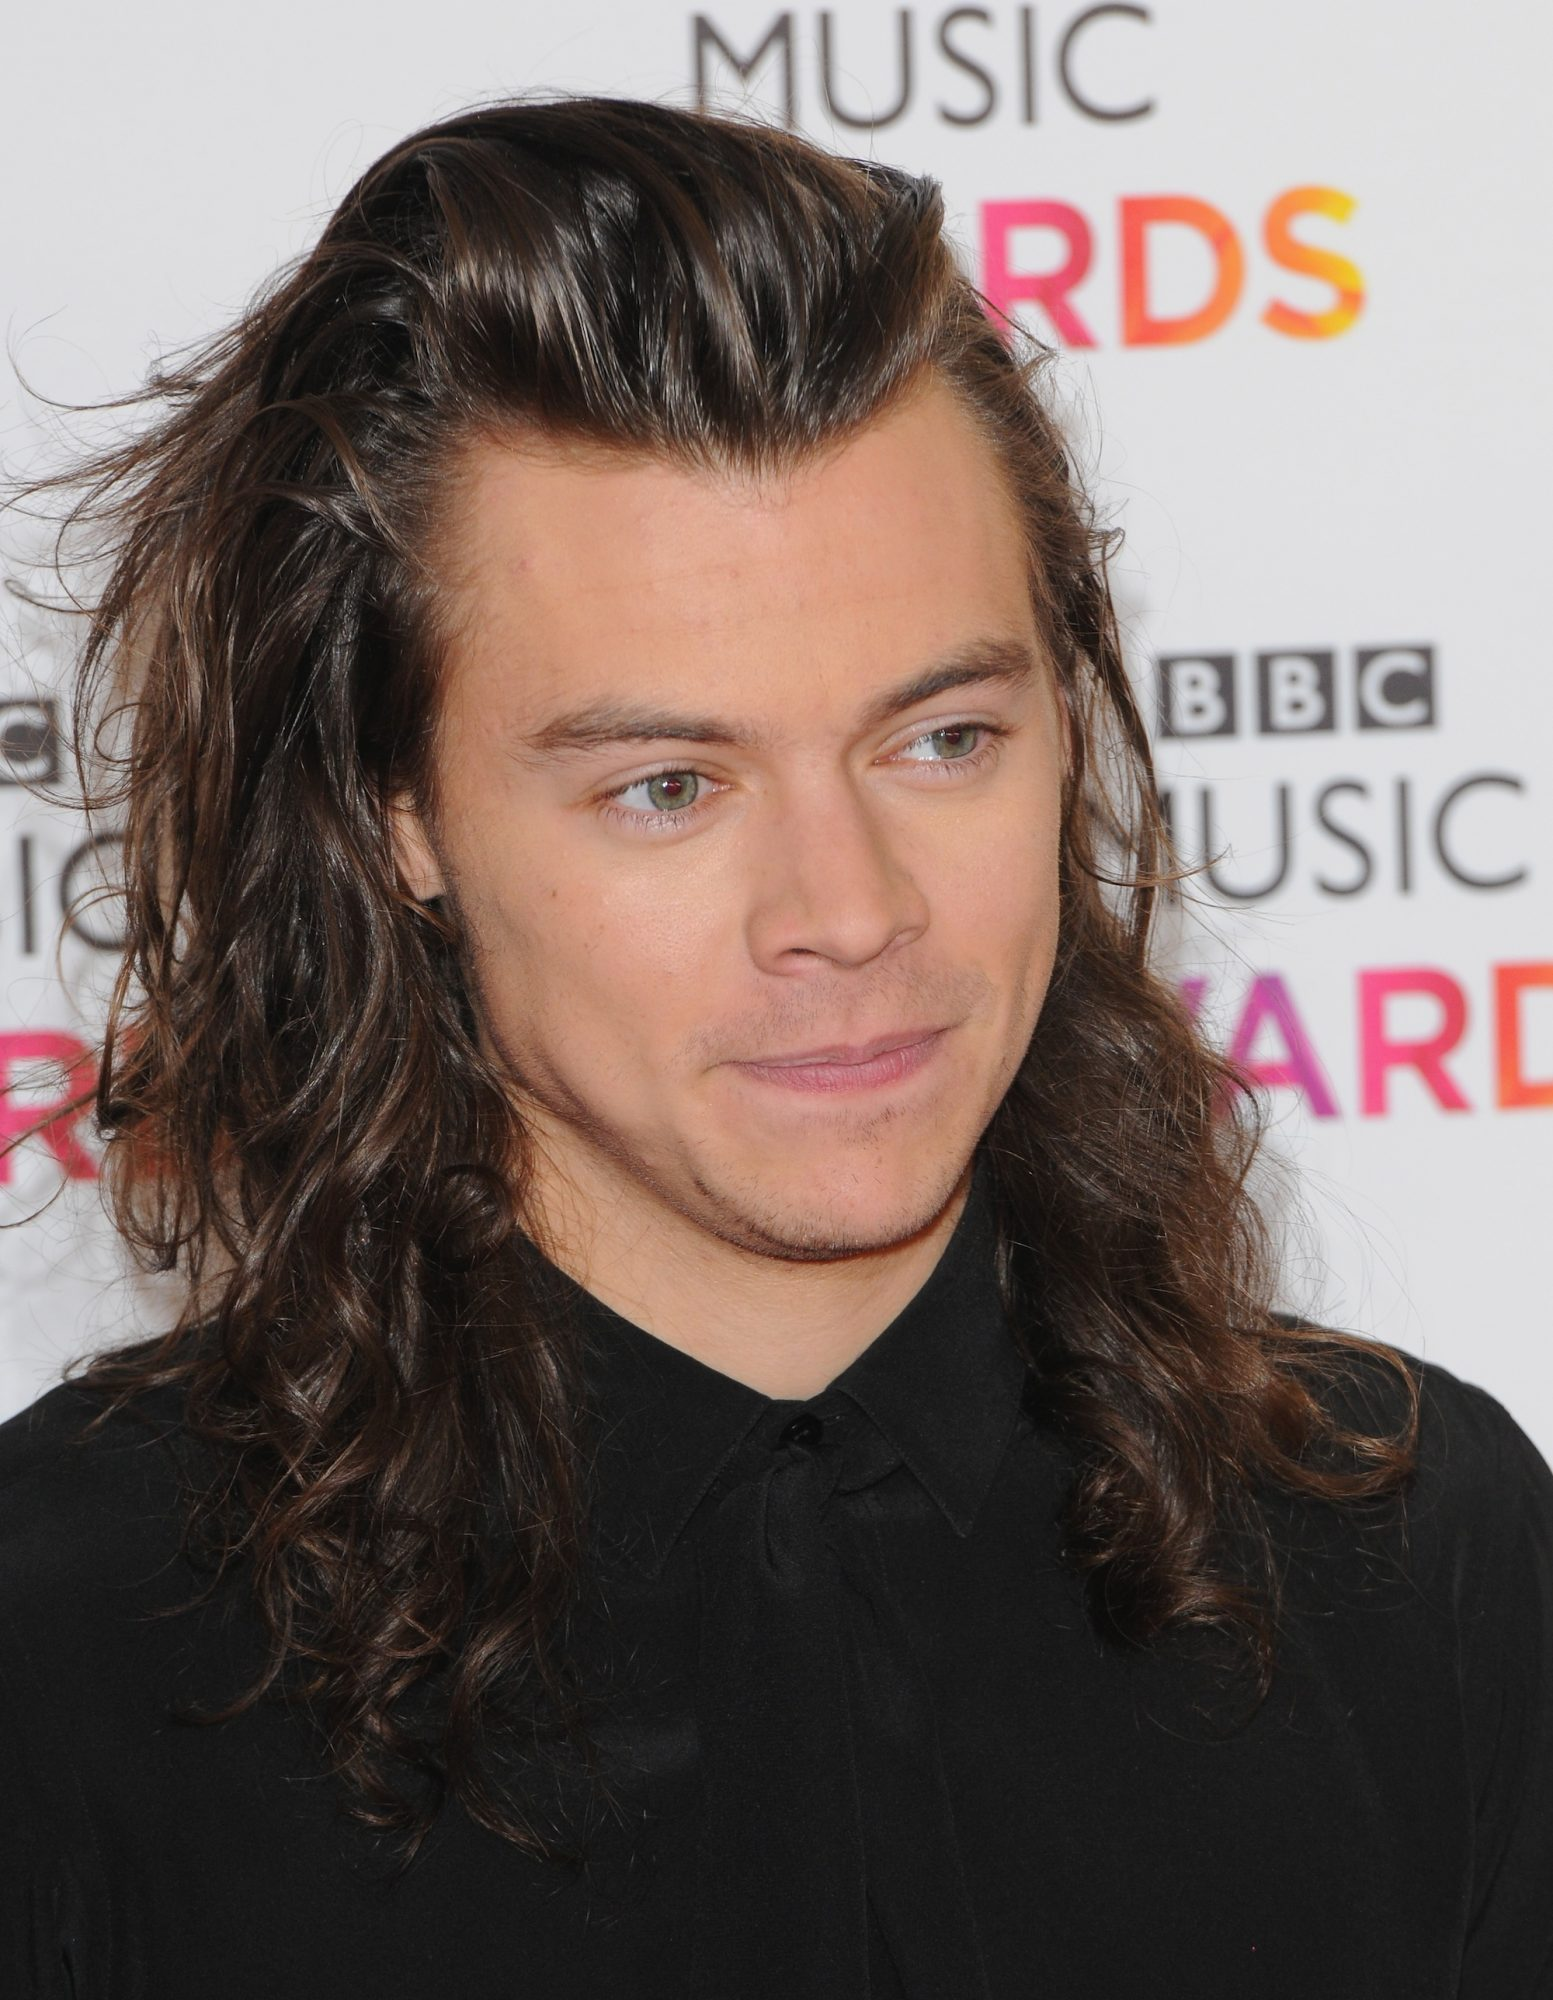 Harry Styles of One Direction attends the BBC Music Awards.